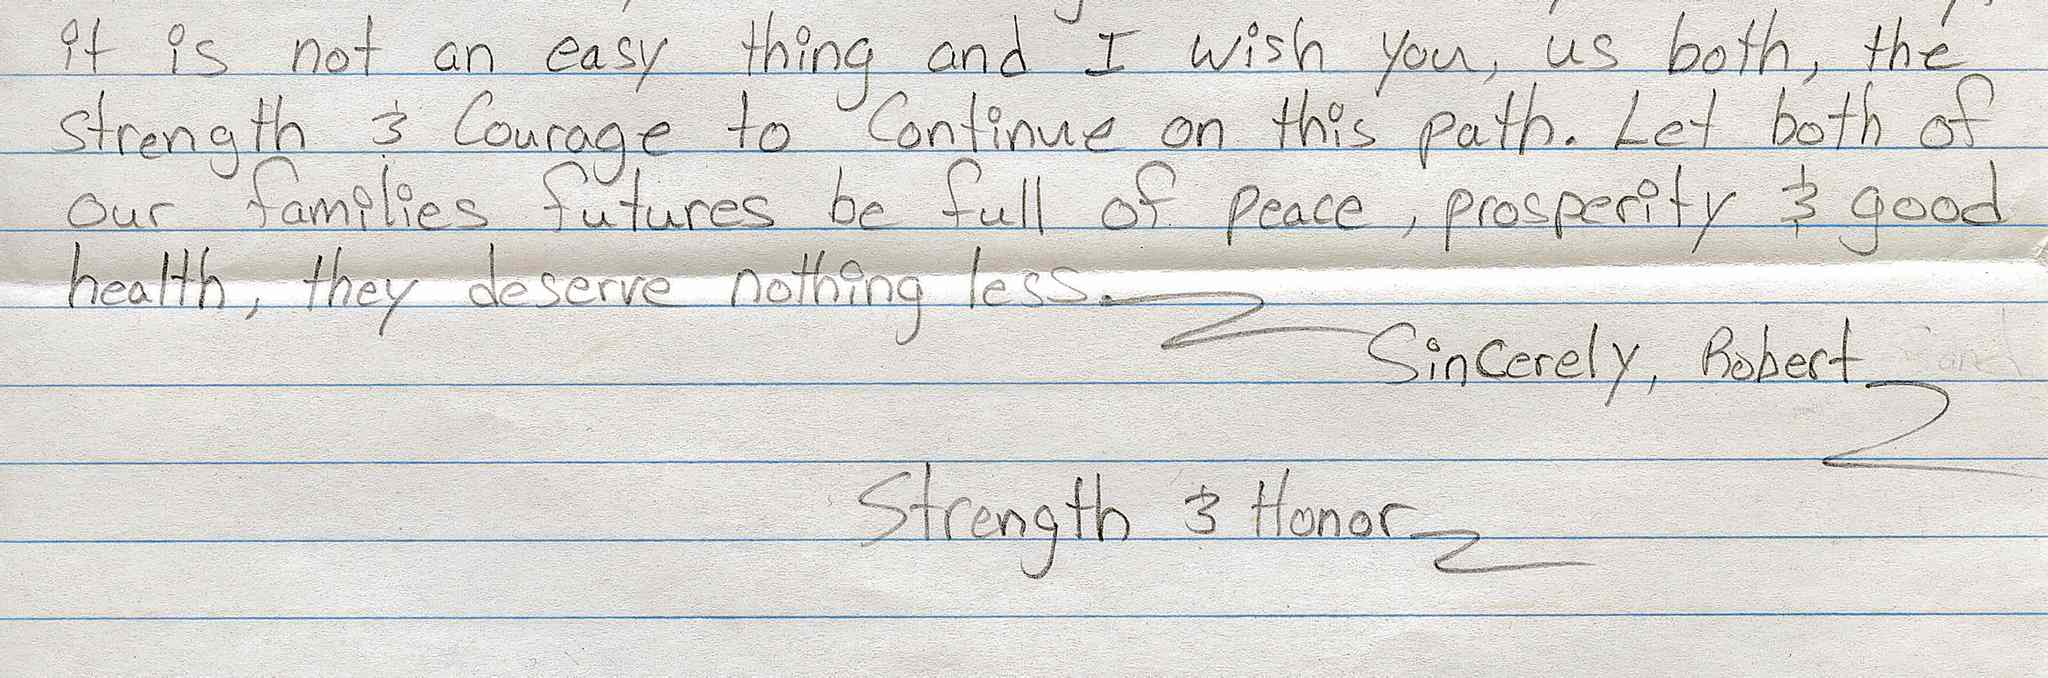 An excerpt from letter written by Robert Sand to Ricky Strongquill, son of Dennis Strongquill